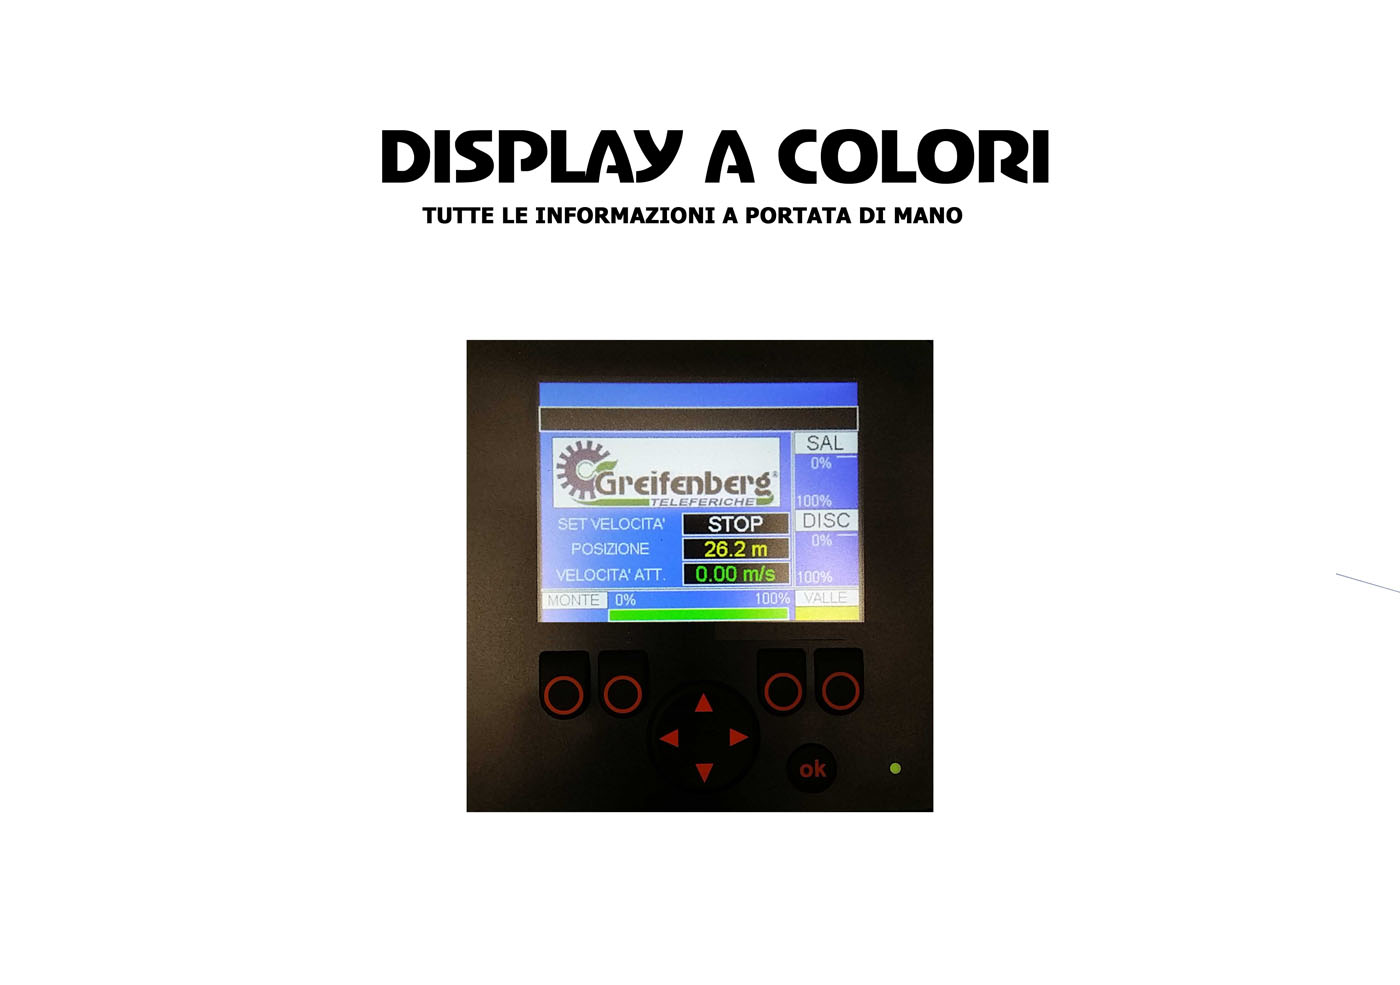 Display a colori